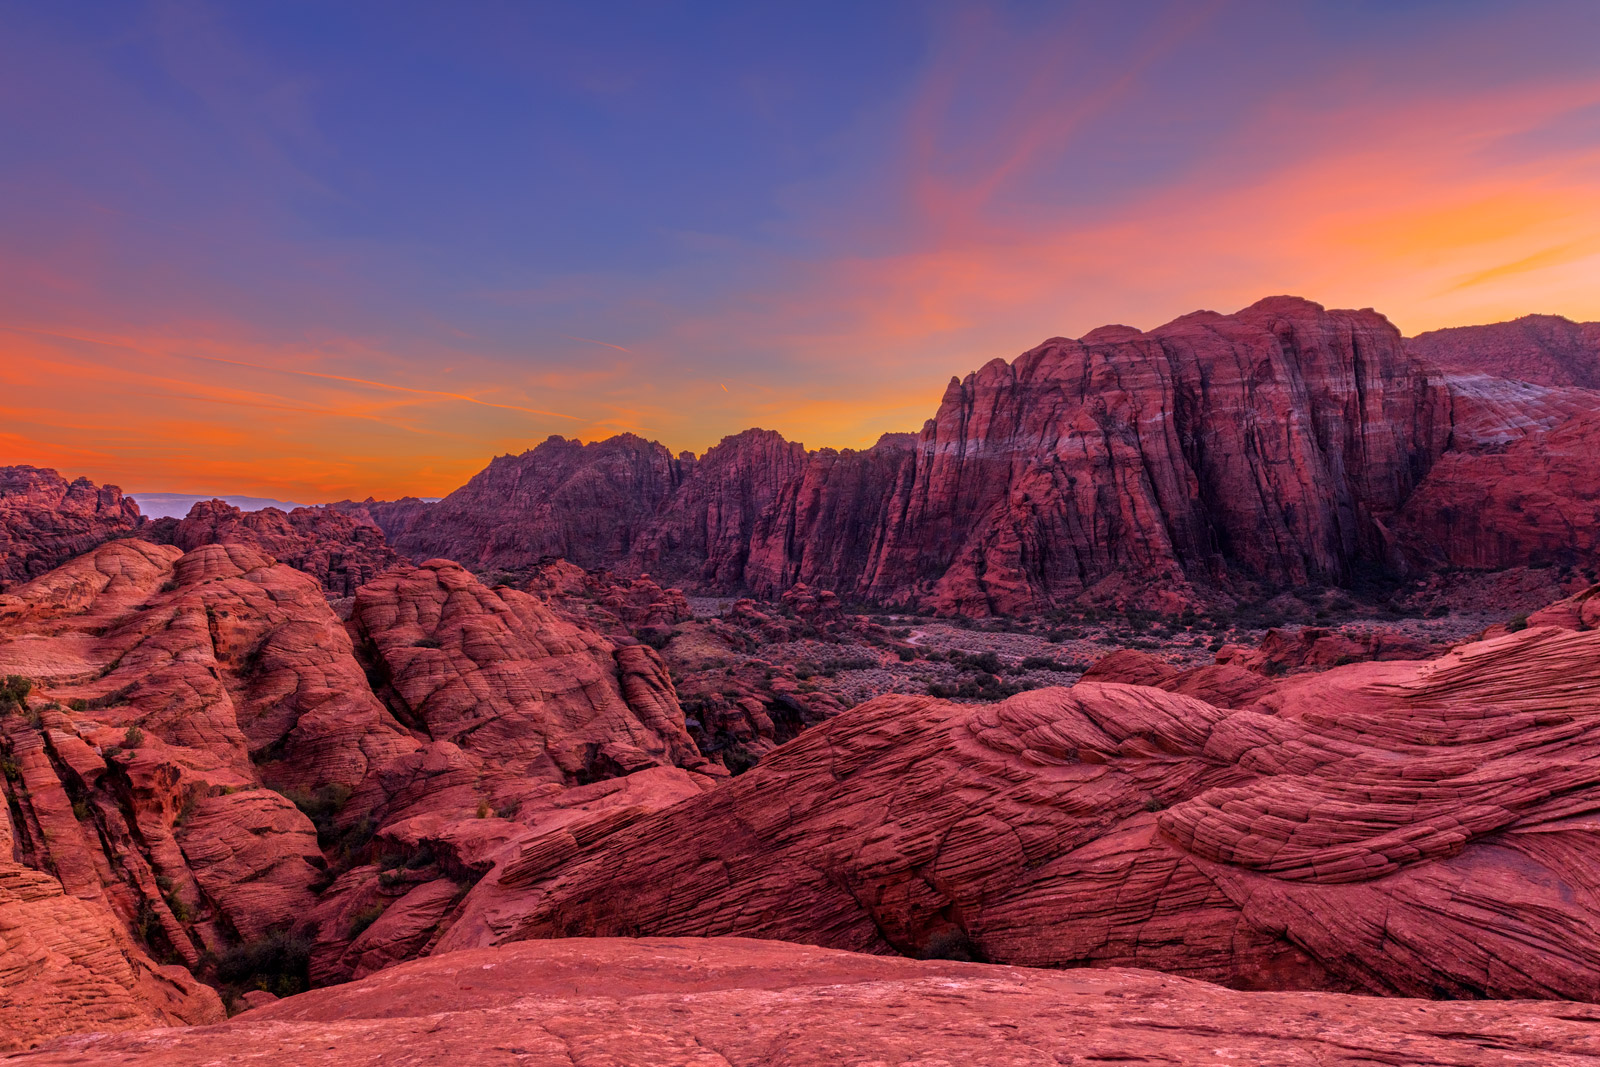 Utah, Snow Canyon, Sunset, Red Rock